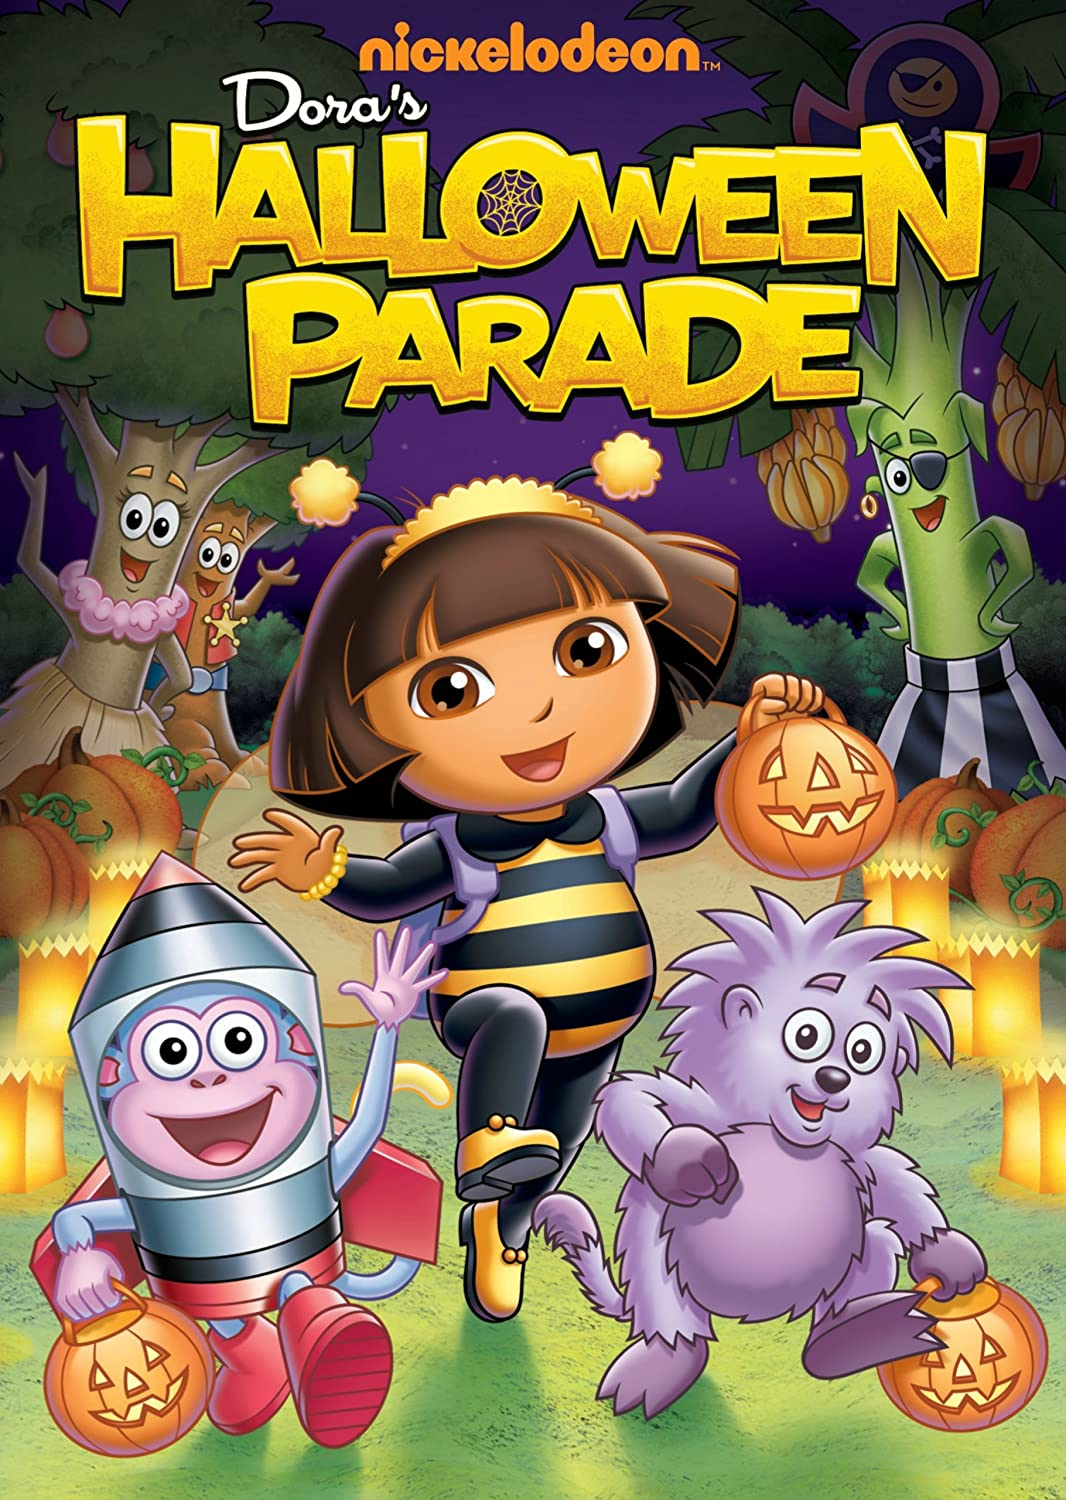 http://www.amazon.com/Doras-Halloween-Parade-Dora-Explorer/dp/B0054JELSY/